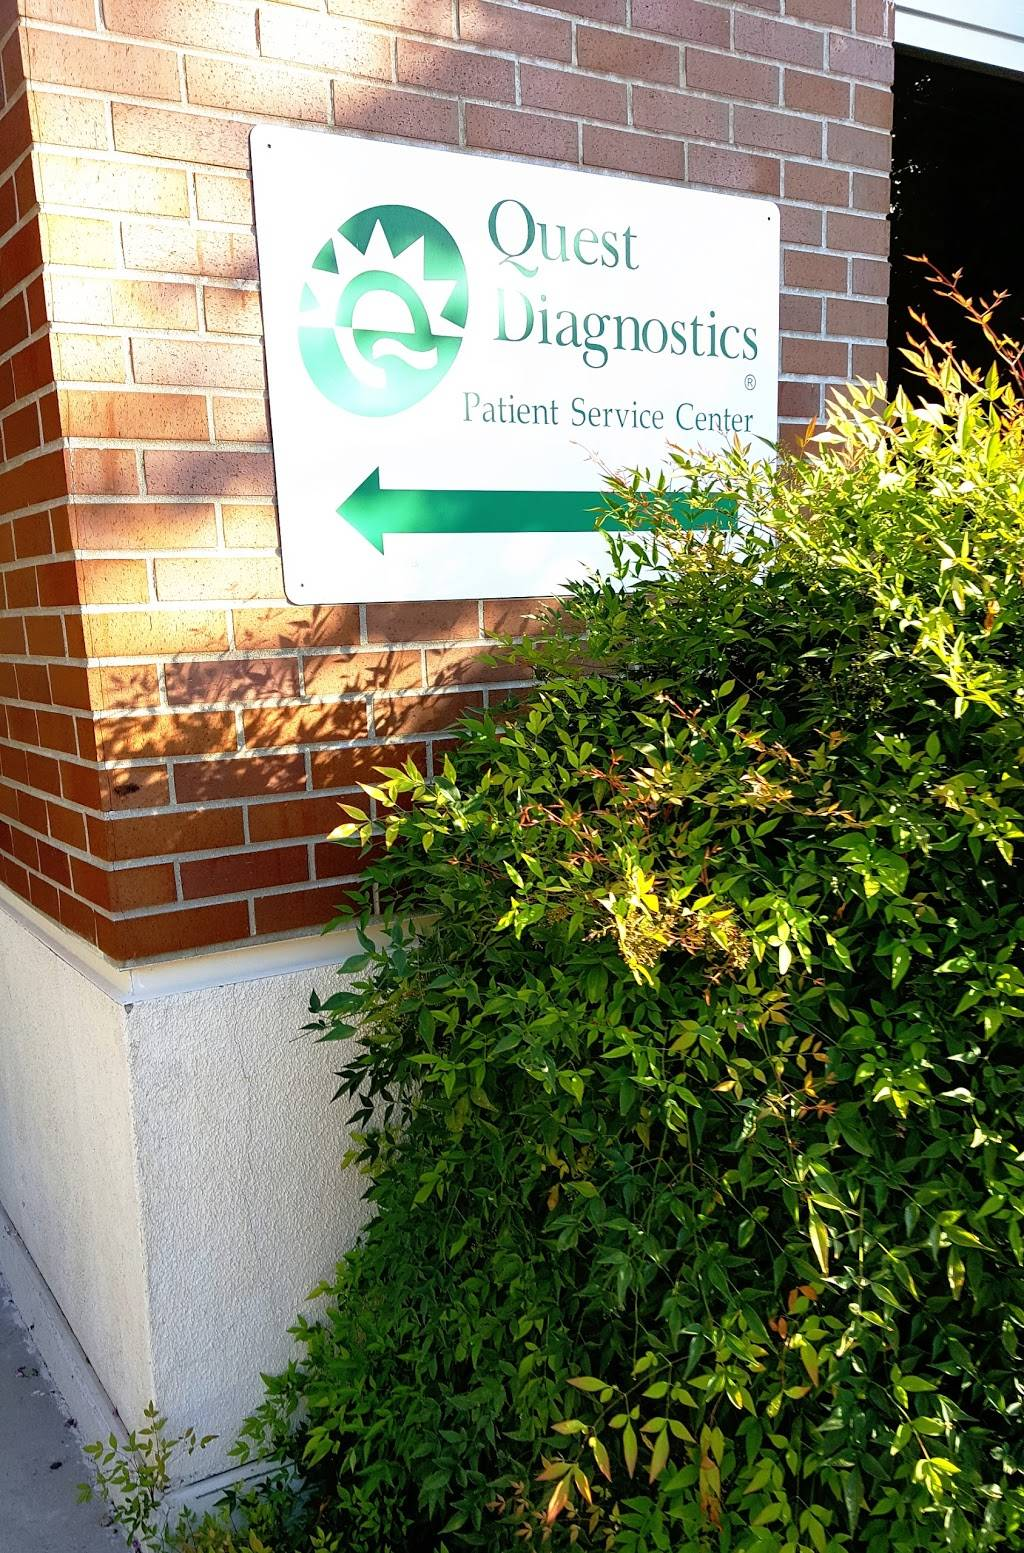 Quest Diagnostics - health  | Photo 5 of 5 | Address: 3270 Arena Blvd, Sacramento, CA 95834, USA | Phone: (916) 285-0225